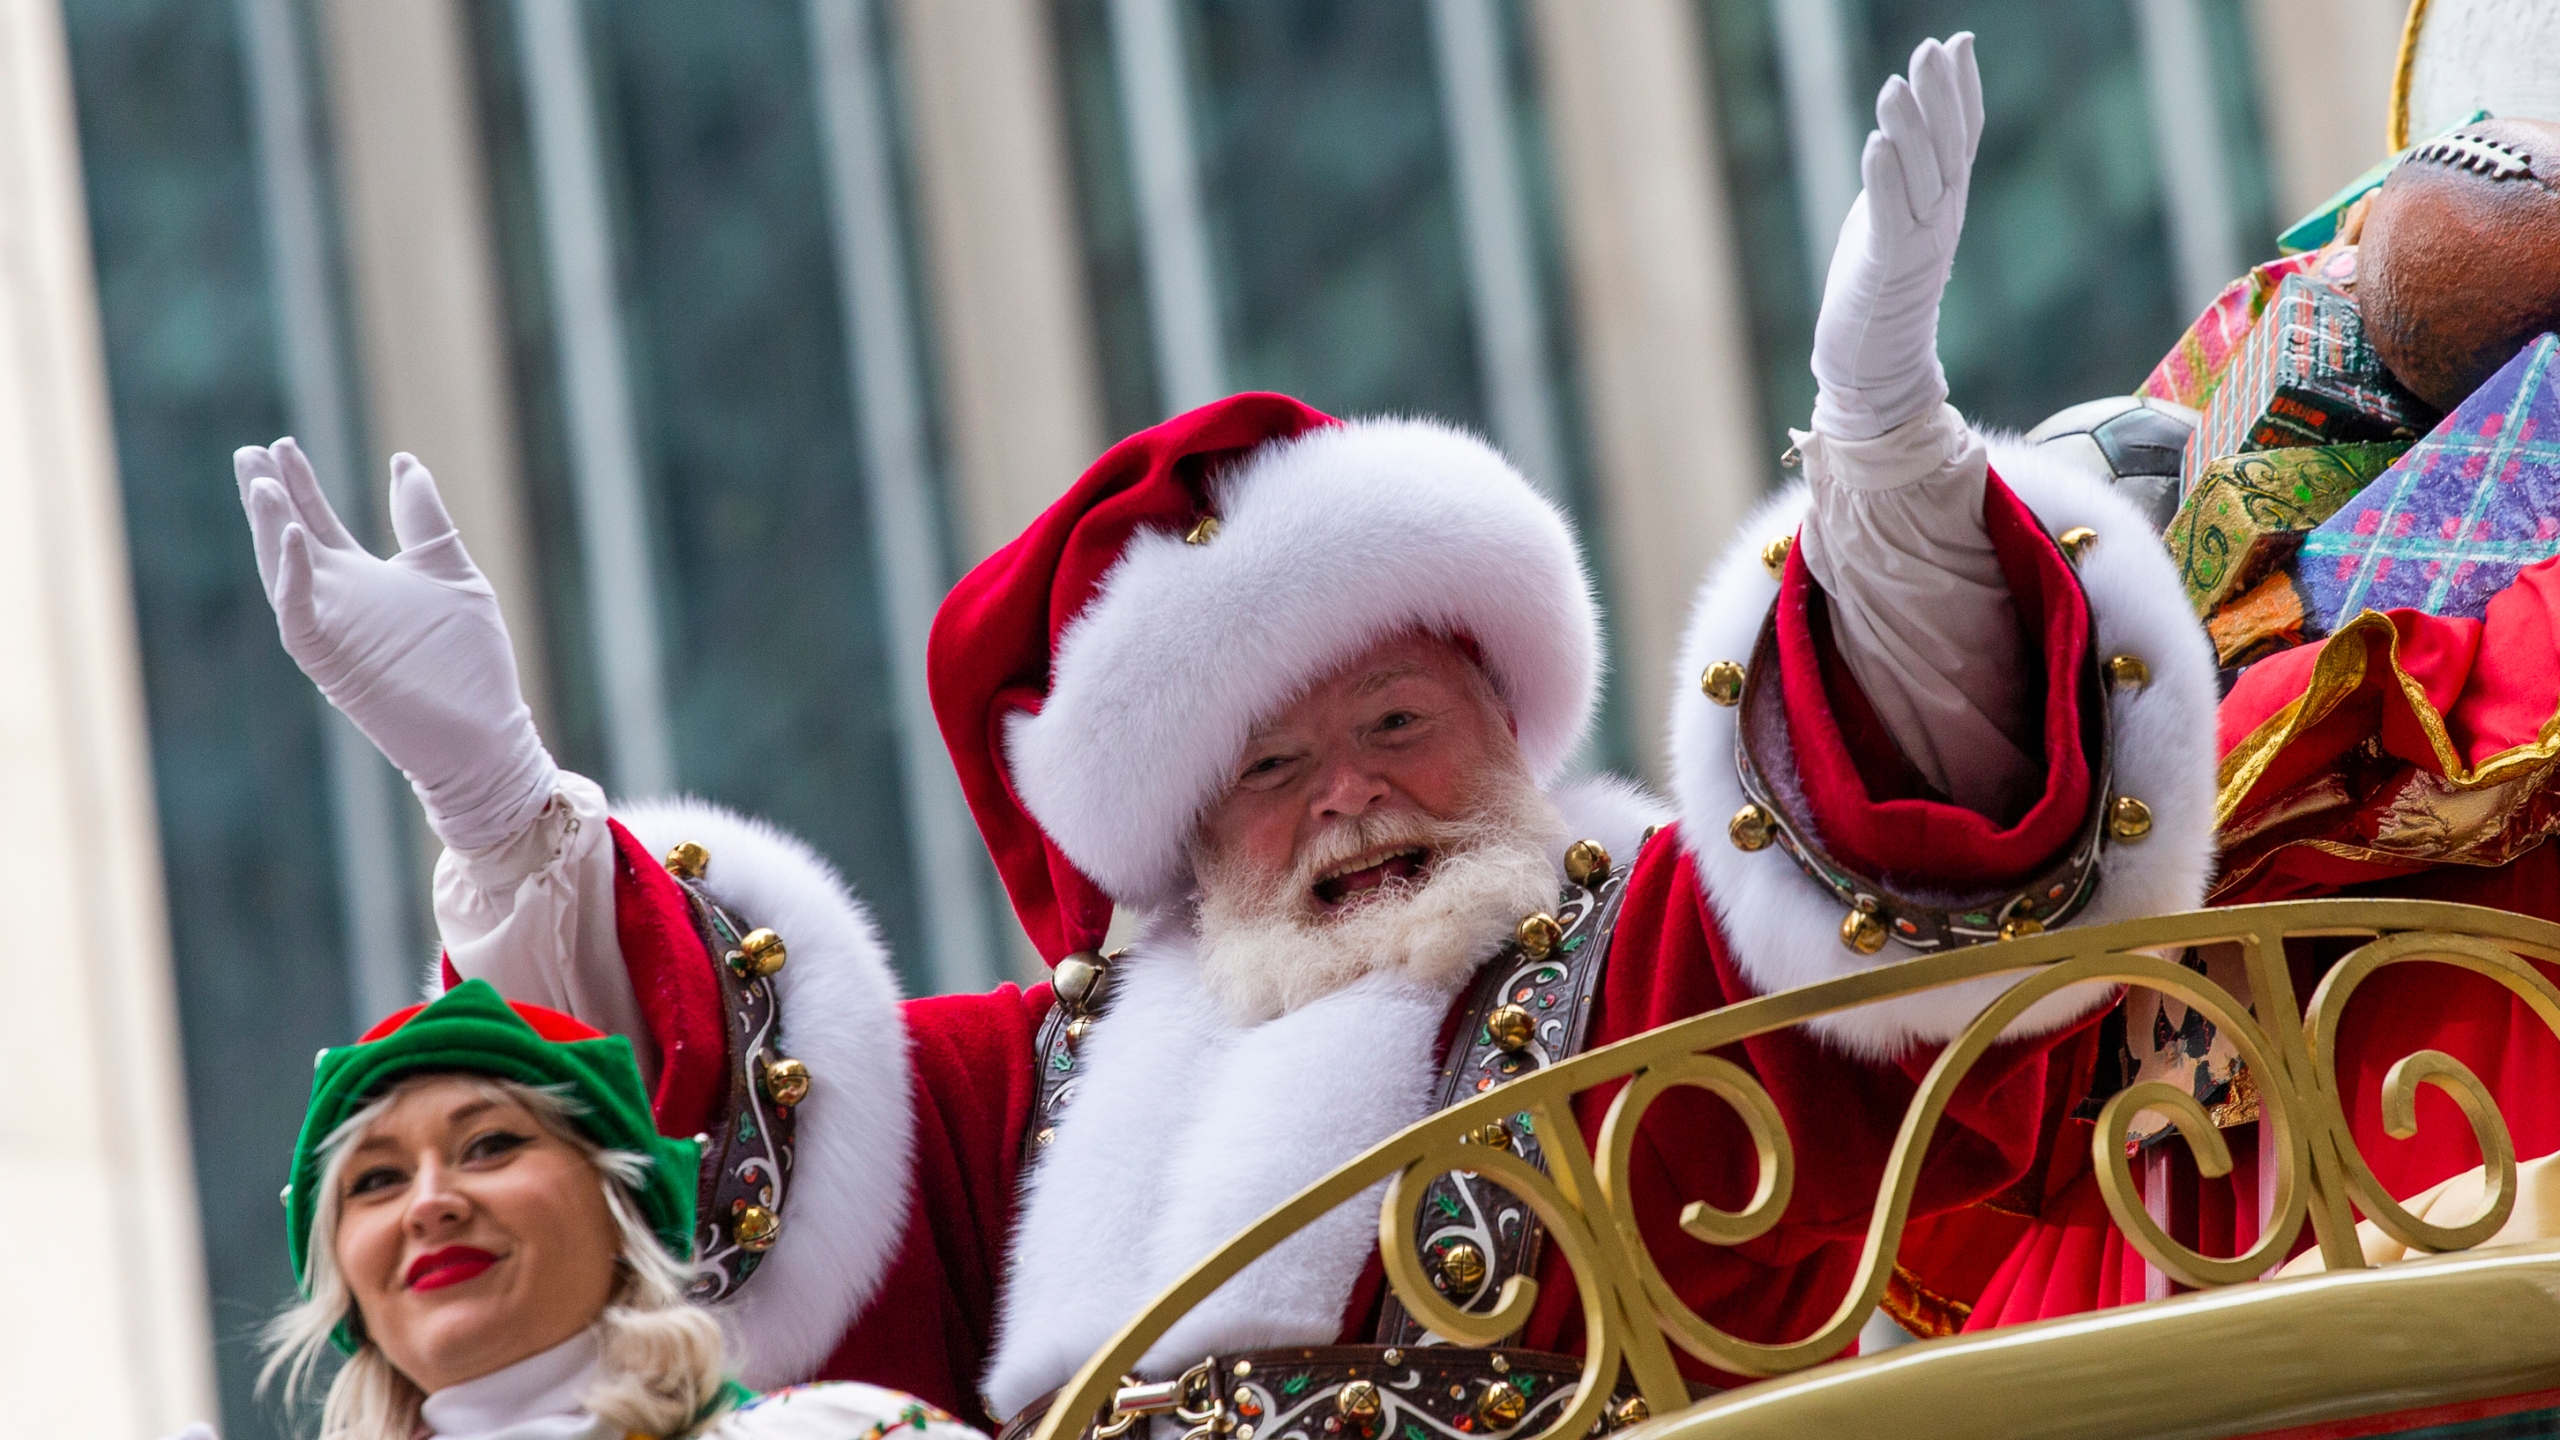 Santa Claus waves during the Macy's Thanksgiving Day Parade, Nov. 28, 2019, in New York. Macy's said Santa Claus won't be greeting kids at its flagship New York store this year due to the coronavirus, interrupting a holiday tradition started nearly 160 years ago. However, Macy's said the jolly old man will still appear at the end of the televised Macy's Thanksgiving Day parade. (AP Photo/Eduardo Munoz Alvarez, File)